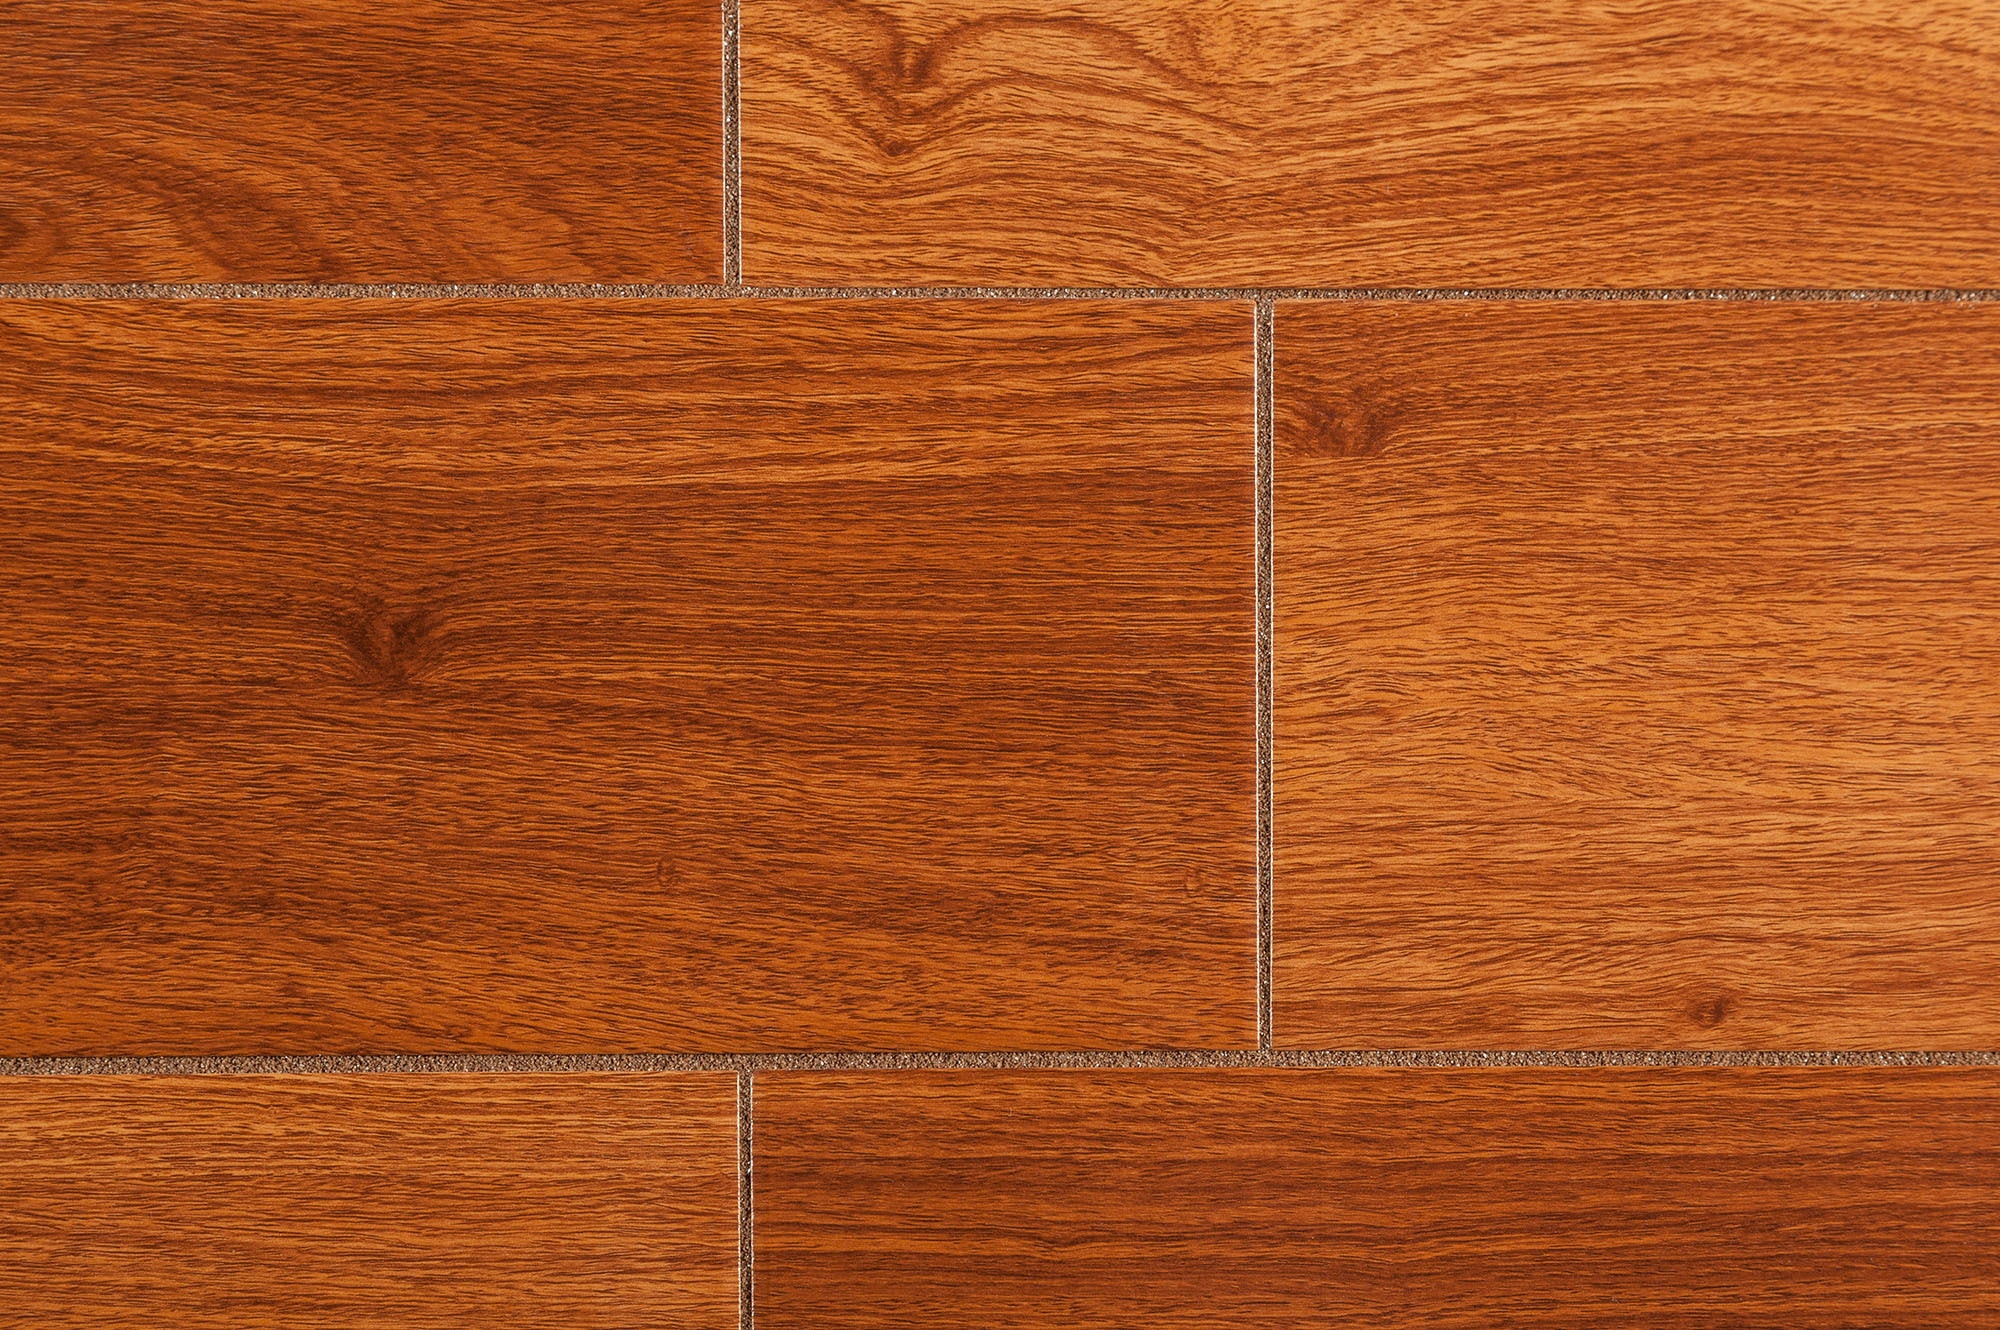 Free samples salerno ceramic tile american wood series red oak free samples salerno ceramic tile american wood series red oak 6x24 dailygadgetfo Image collections